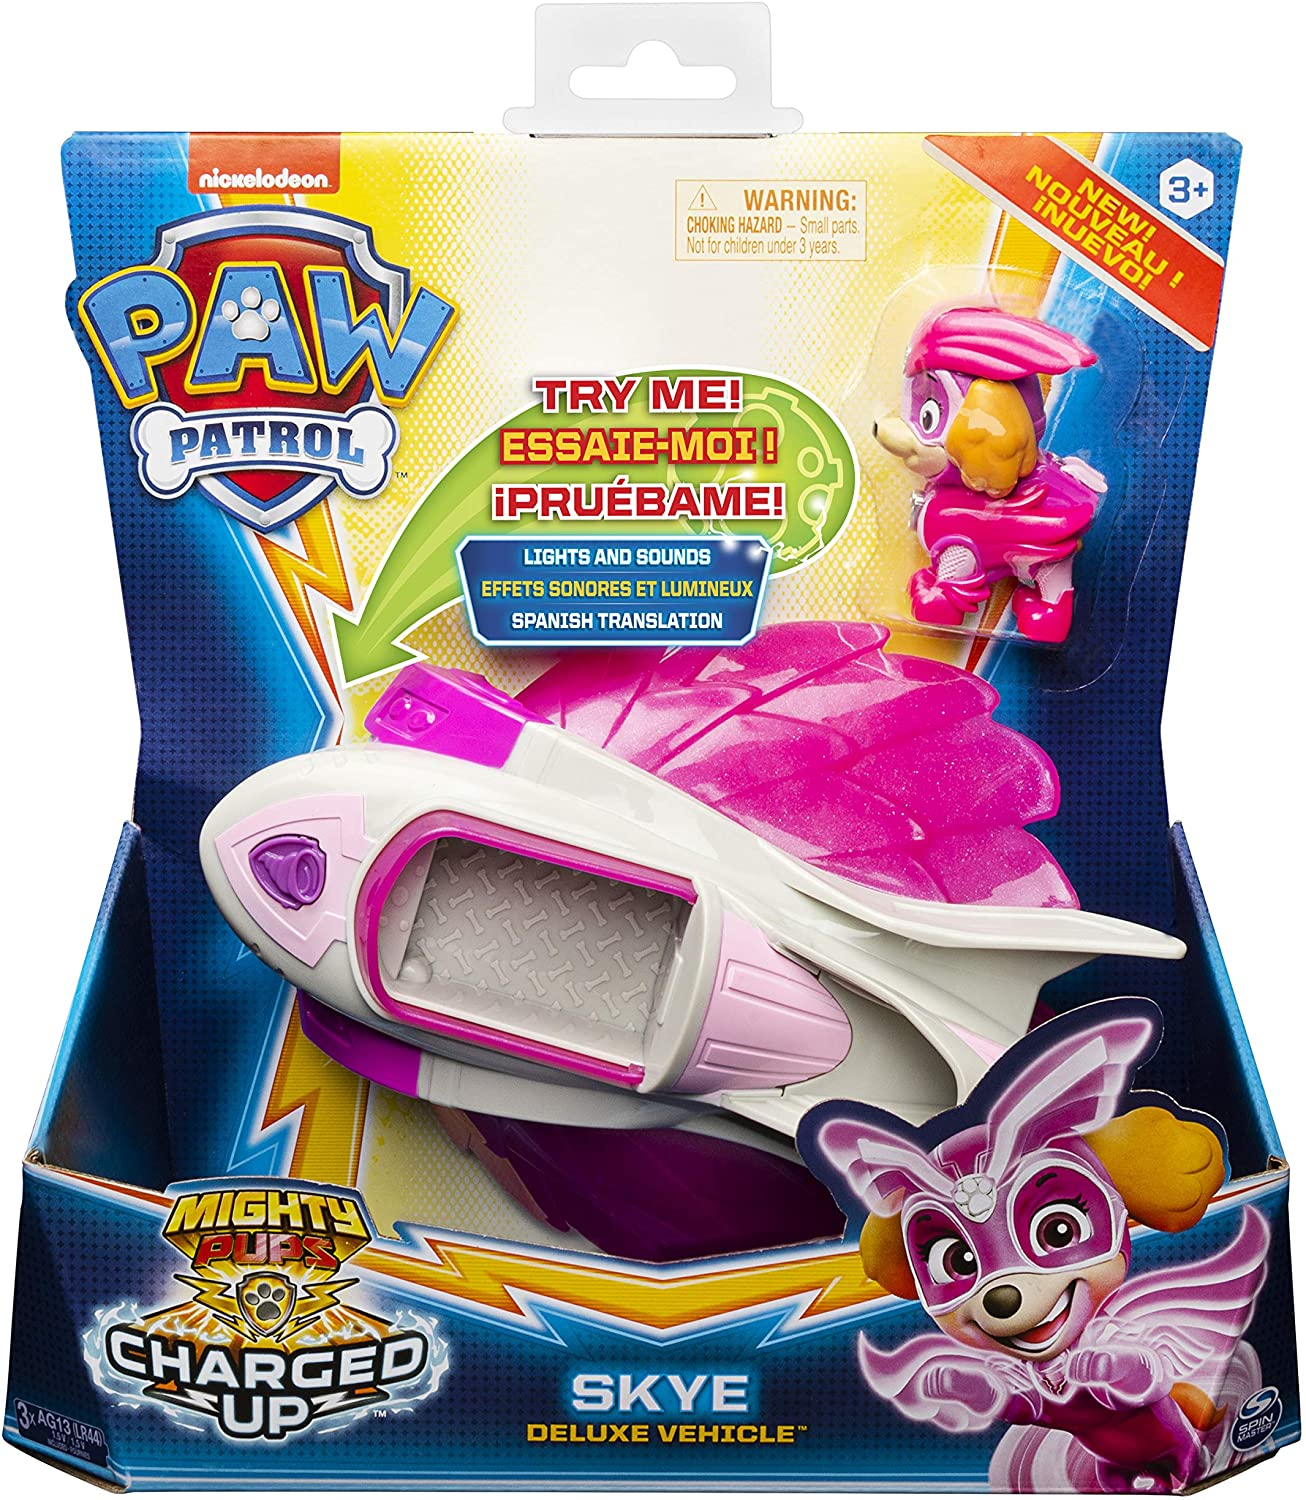 Paw Patrol Mighty Pups Charged Up Skye Deluxe Vehicle